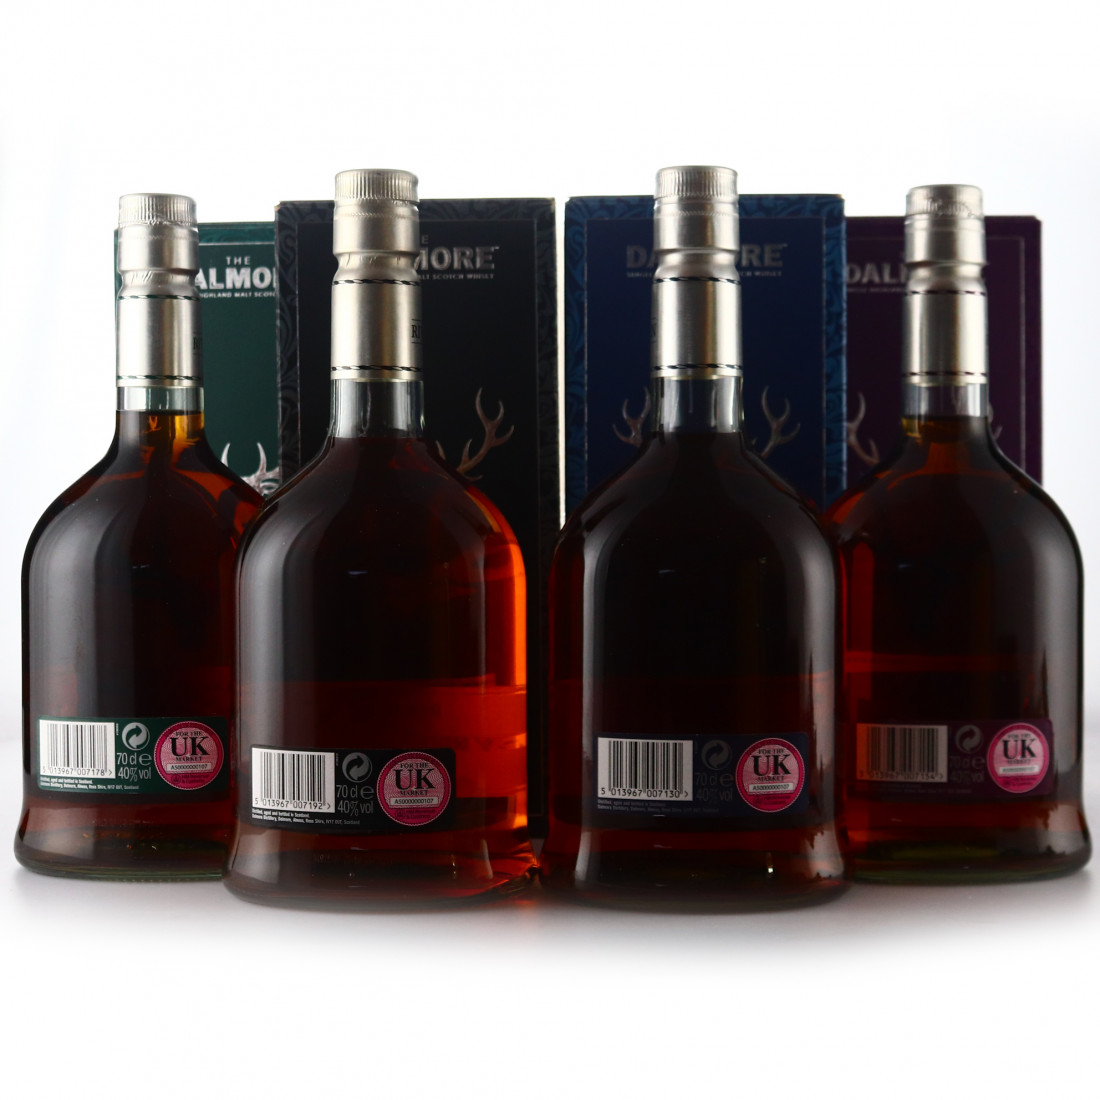 Dalmore Rivers Selection 4 x 70cl / includes Dee Dram 2011